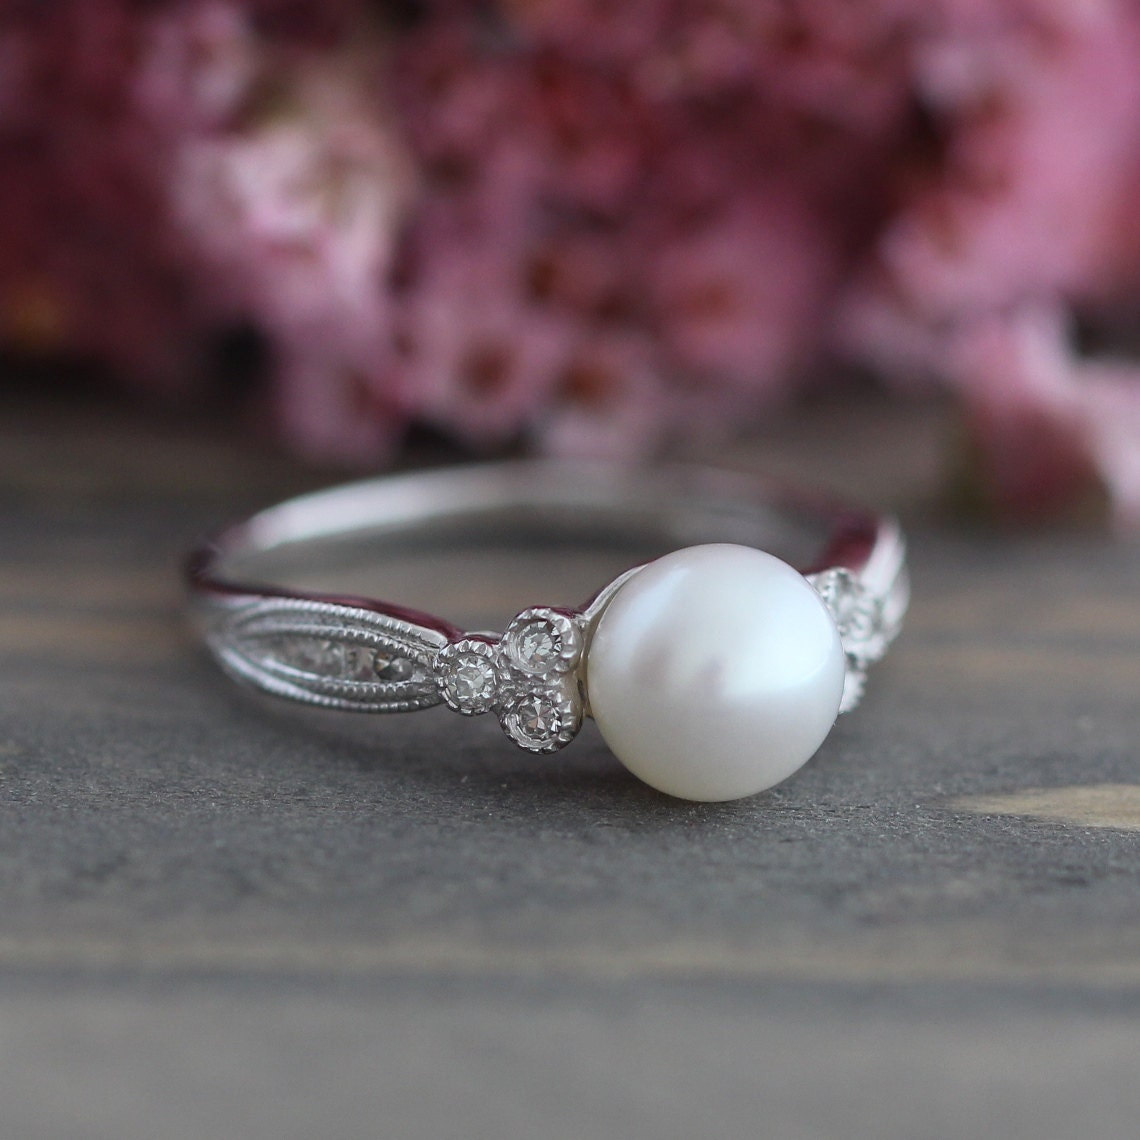 Pearl Wedding Ring: Vintage Inspired Pearl Engagement Ring In 10k White Gold 3